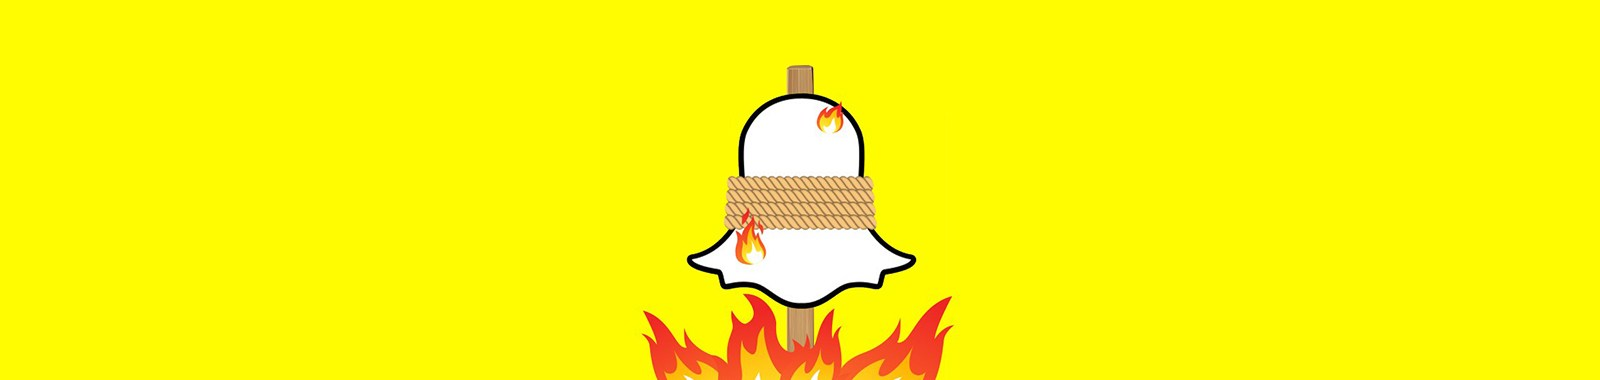 snapchat-burning-eye